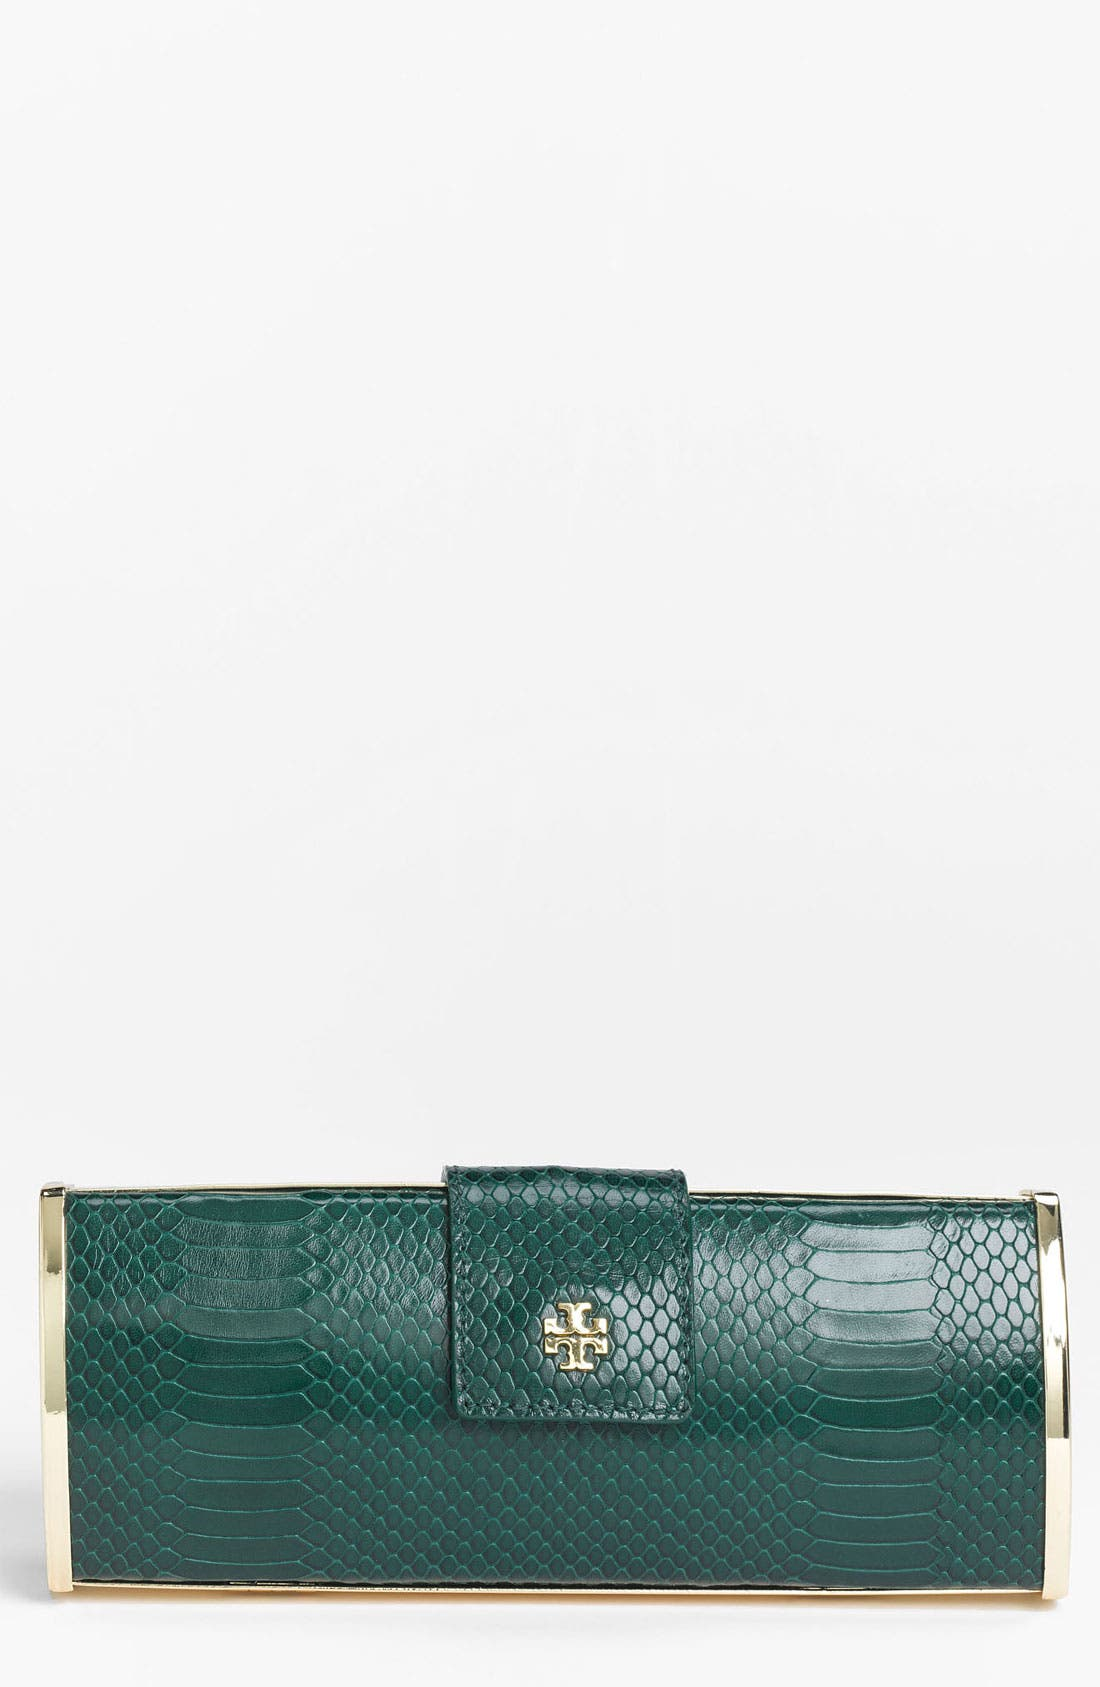 Main Image - Tory Burch 'Snake Roll' Embossed Clutch